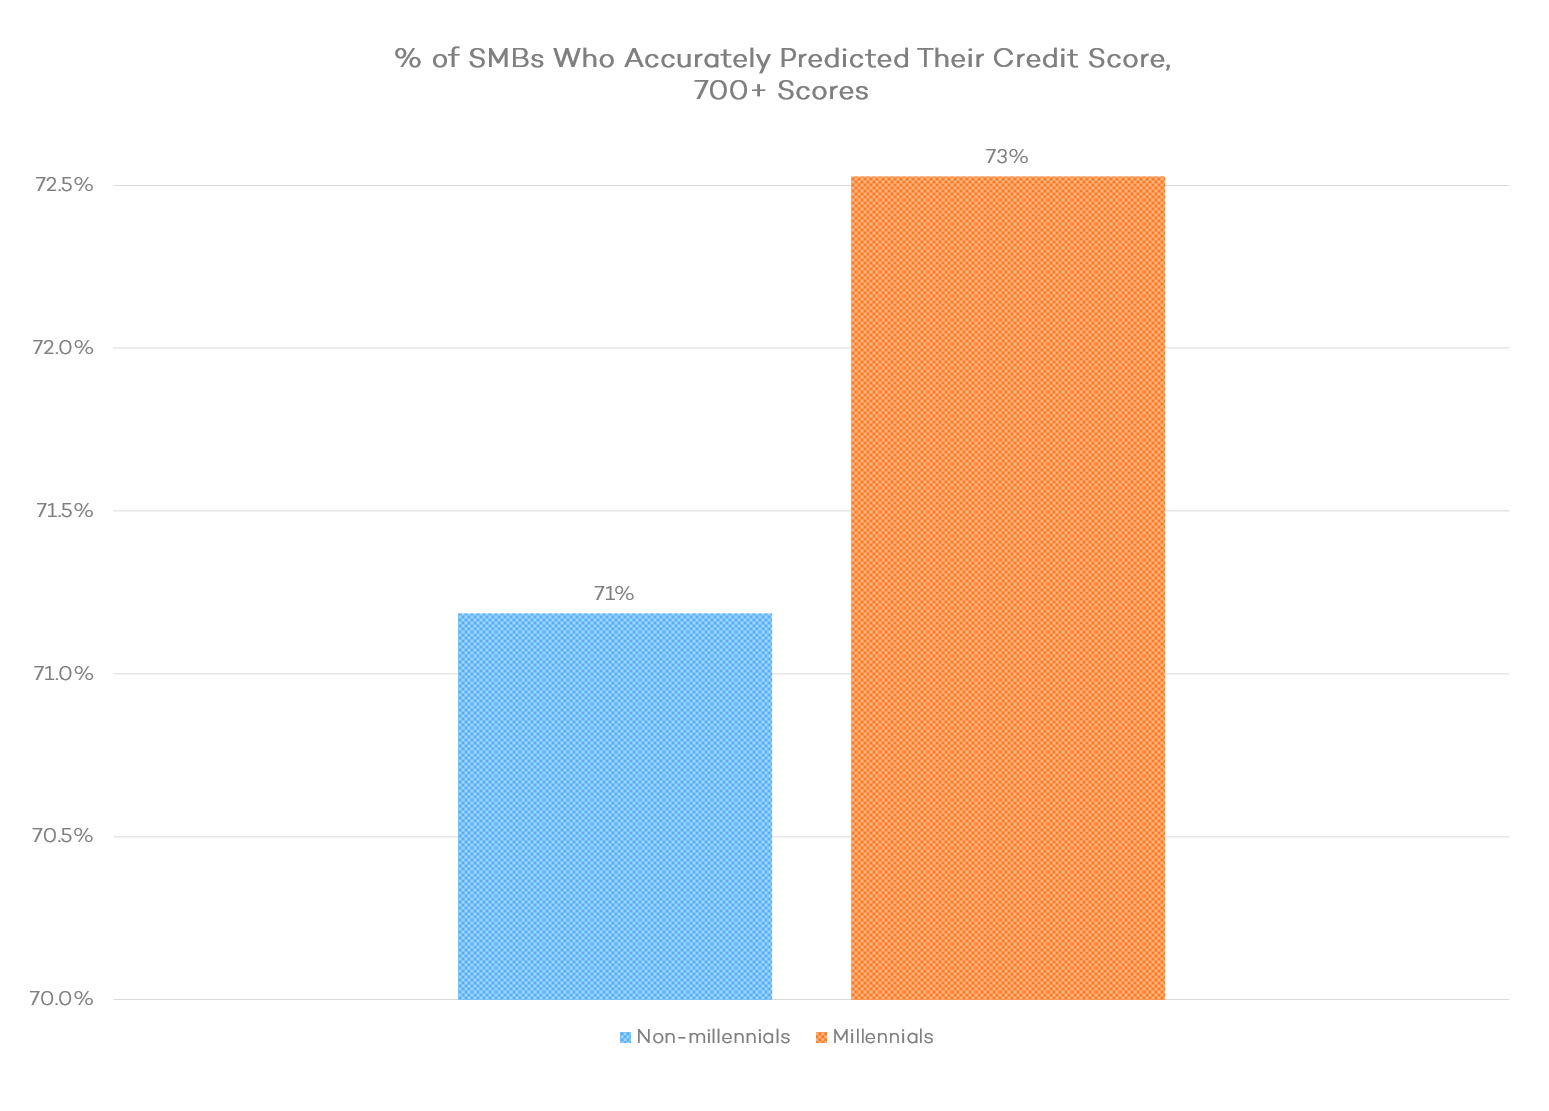 Percent of SMBs Who Accurately Predicted Their Credit Score, 700-plus scores